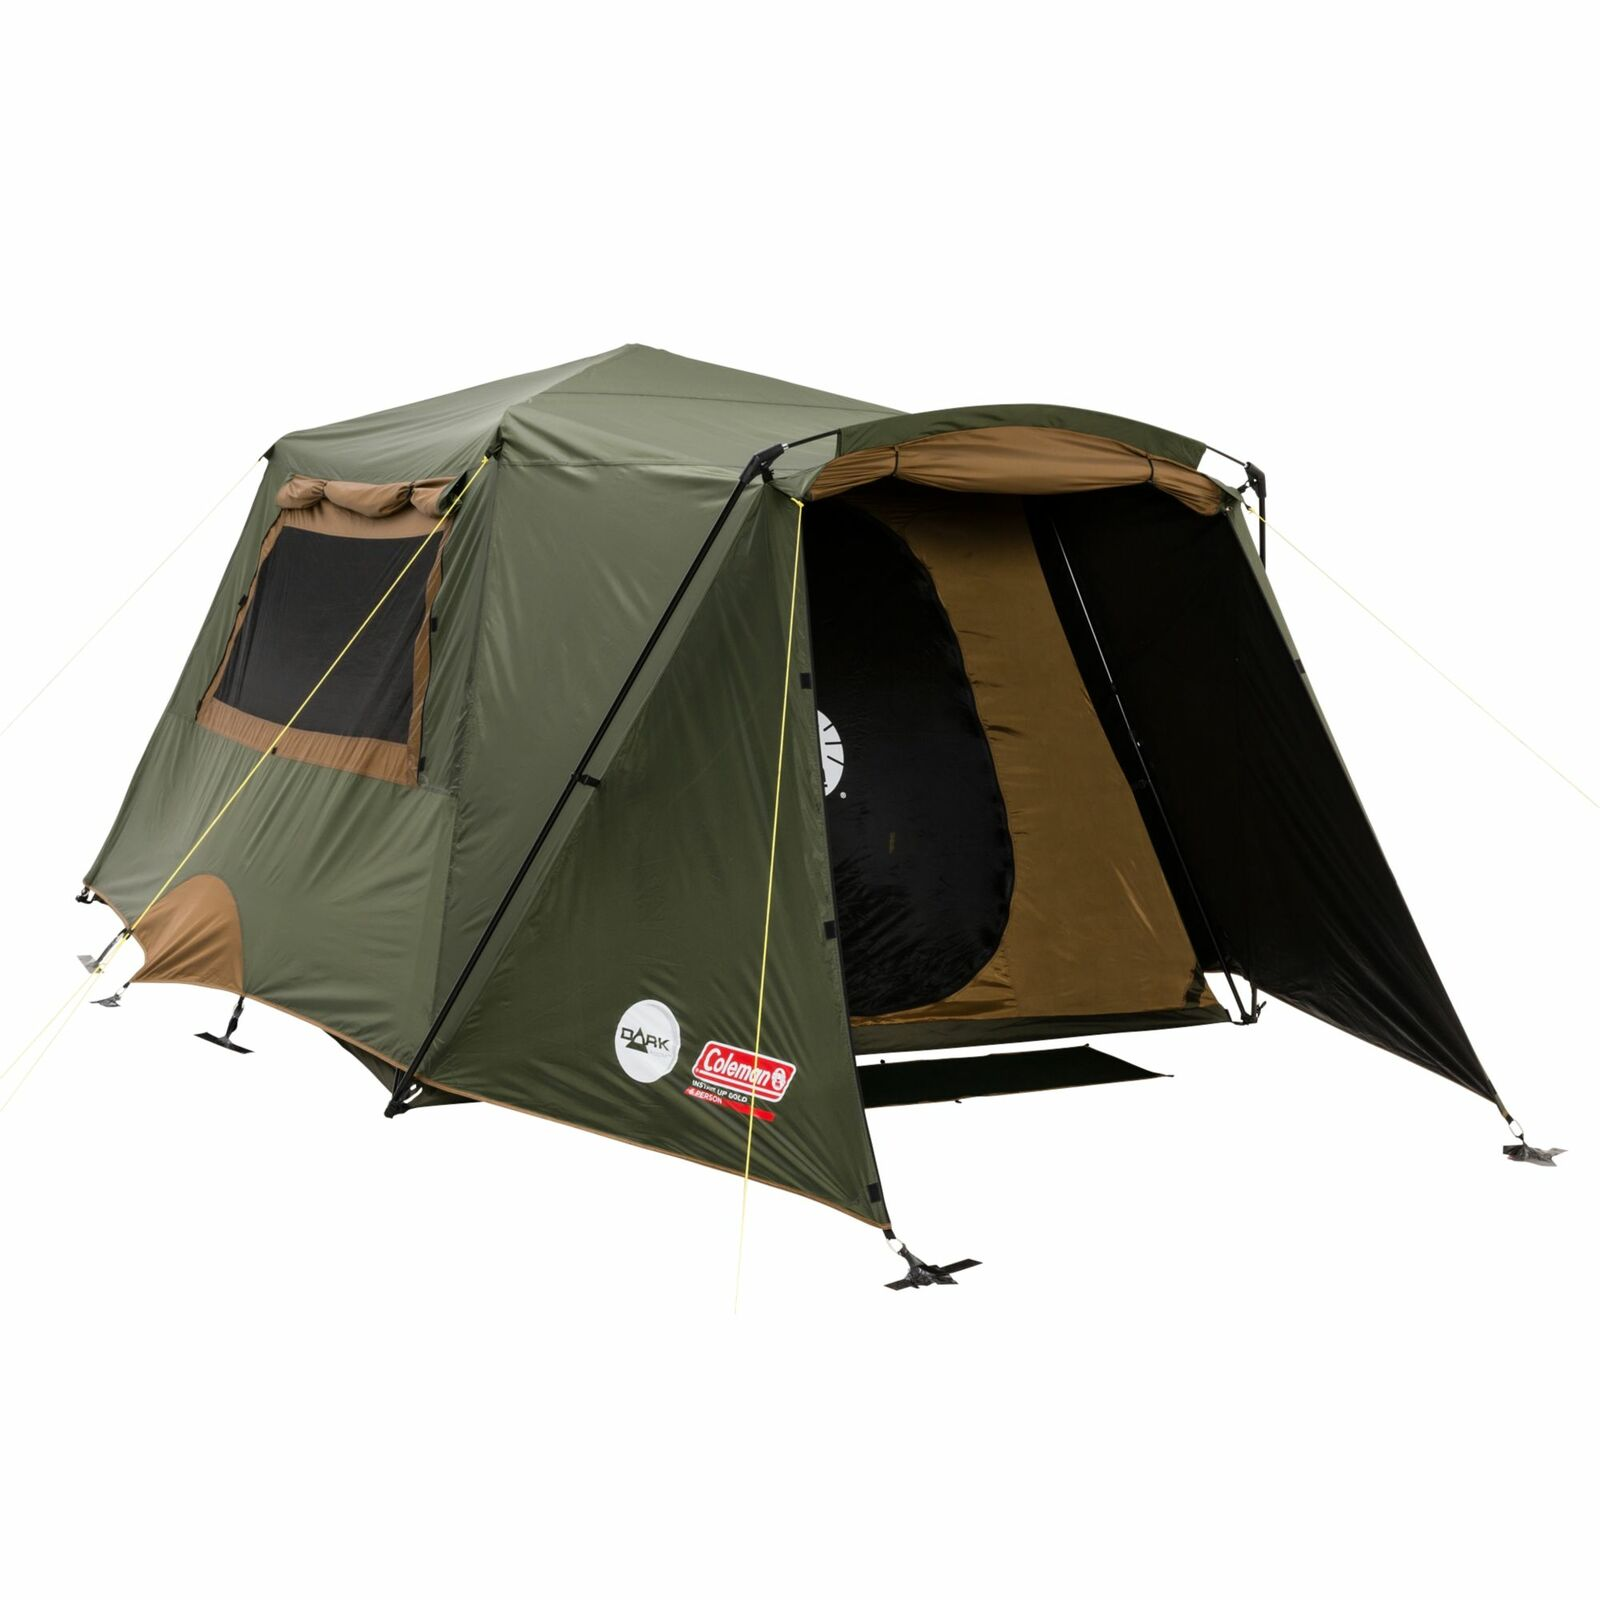 Coleman Instant Up Gold Vestibule DarkRoom Tent 6 Person ...  sc 1 st  Tentworld & Coleman Instant Up Gold Vestibule DarkRoom Tent 6 Person - Tentworld